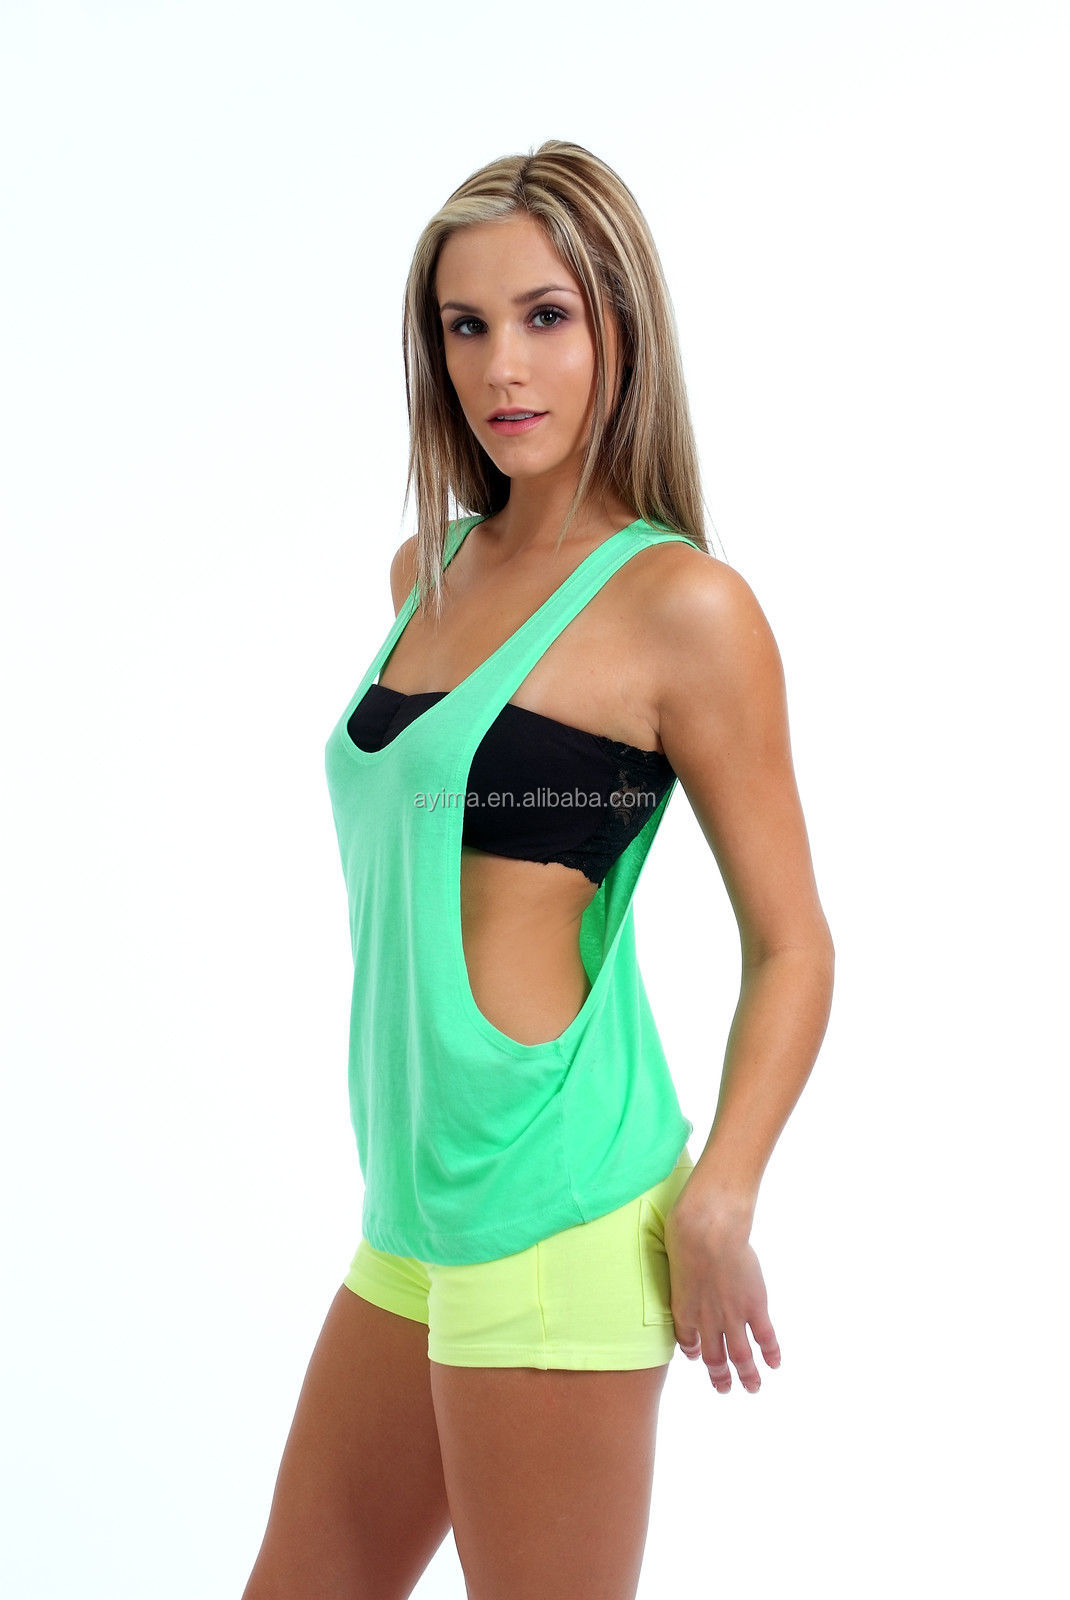 b73aed1229d696 hot selling womens juniors sexy drape tank top wholesale plain t shirts  with open side